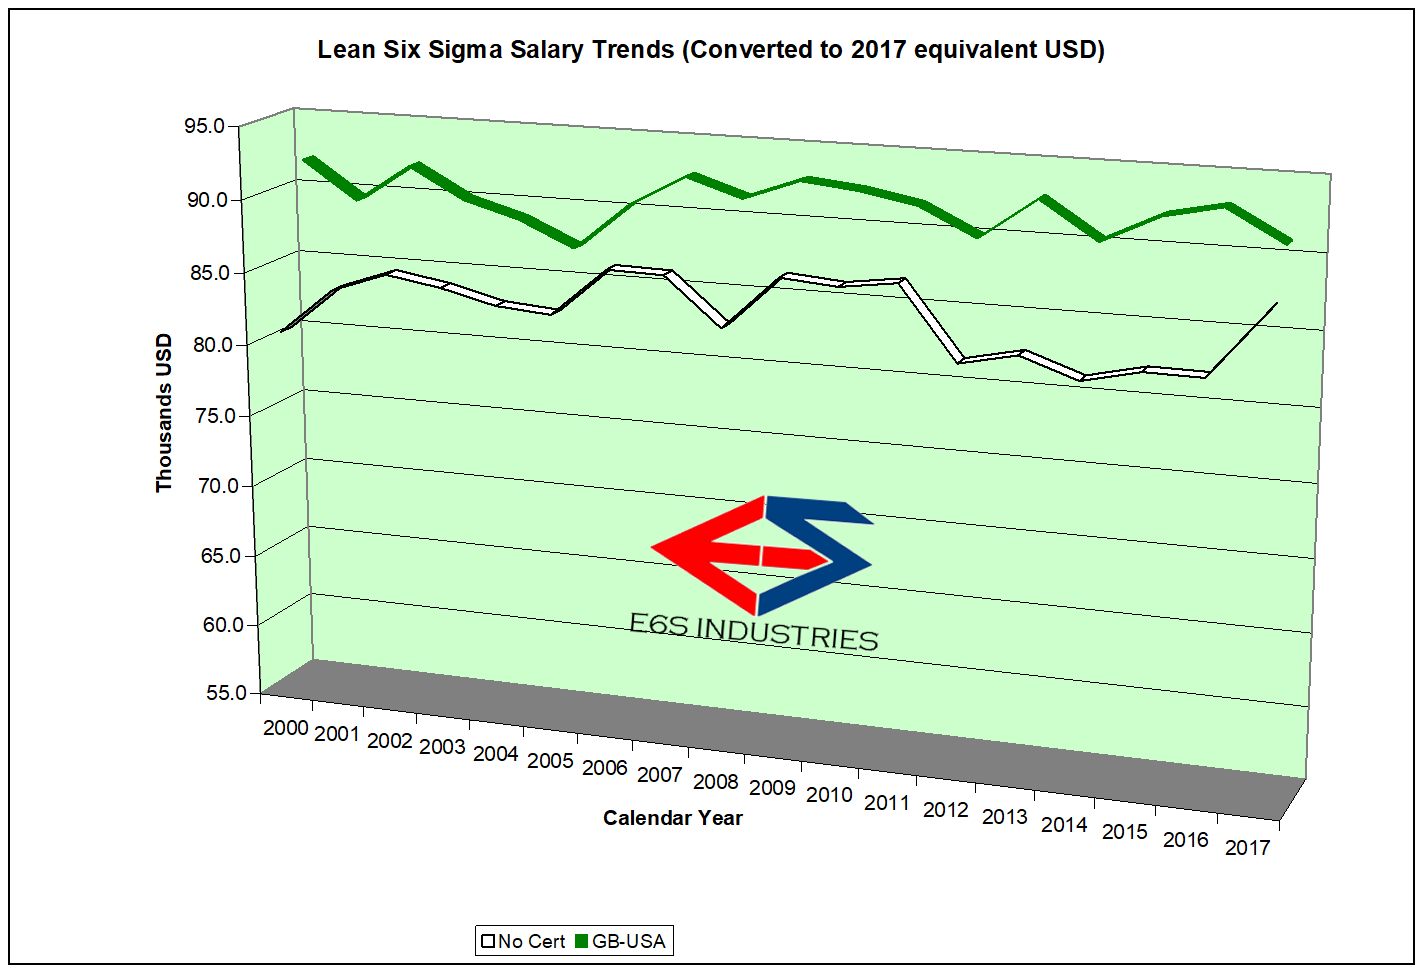 GB Salary Trends 2000-2017 CPI corrected.png